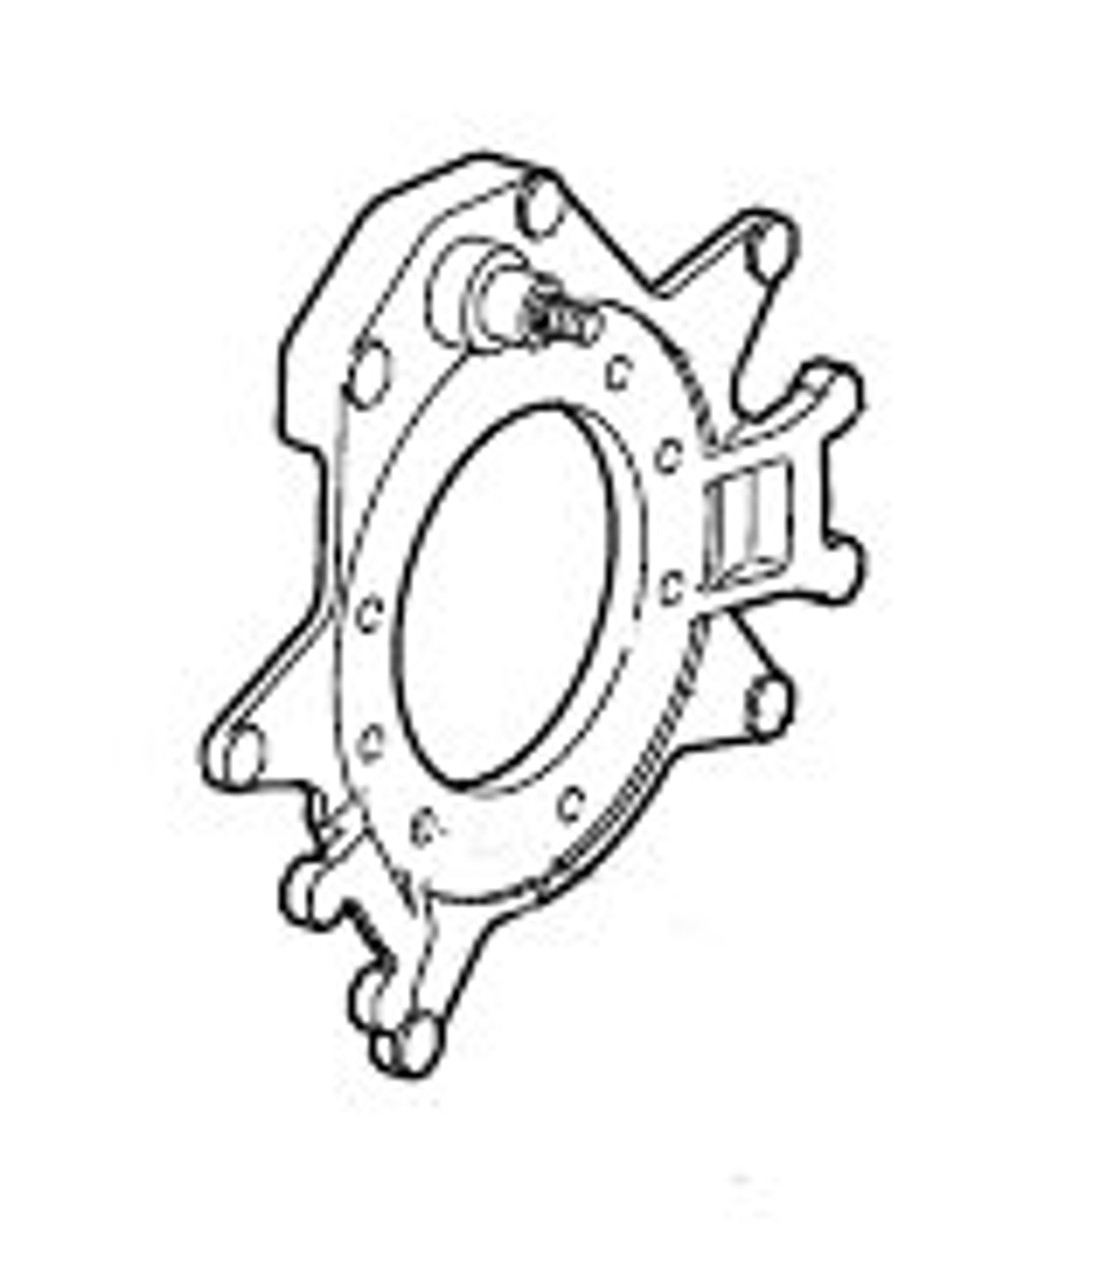 36-120-02 --- Cast Backing Assembly for 10k to 15k Capacity Dexter Electric Brakes